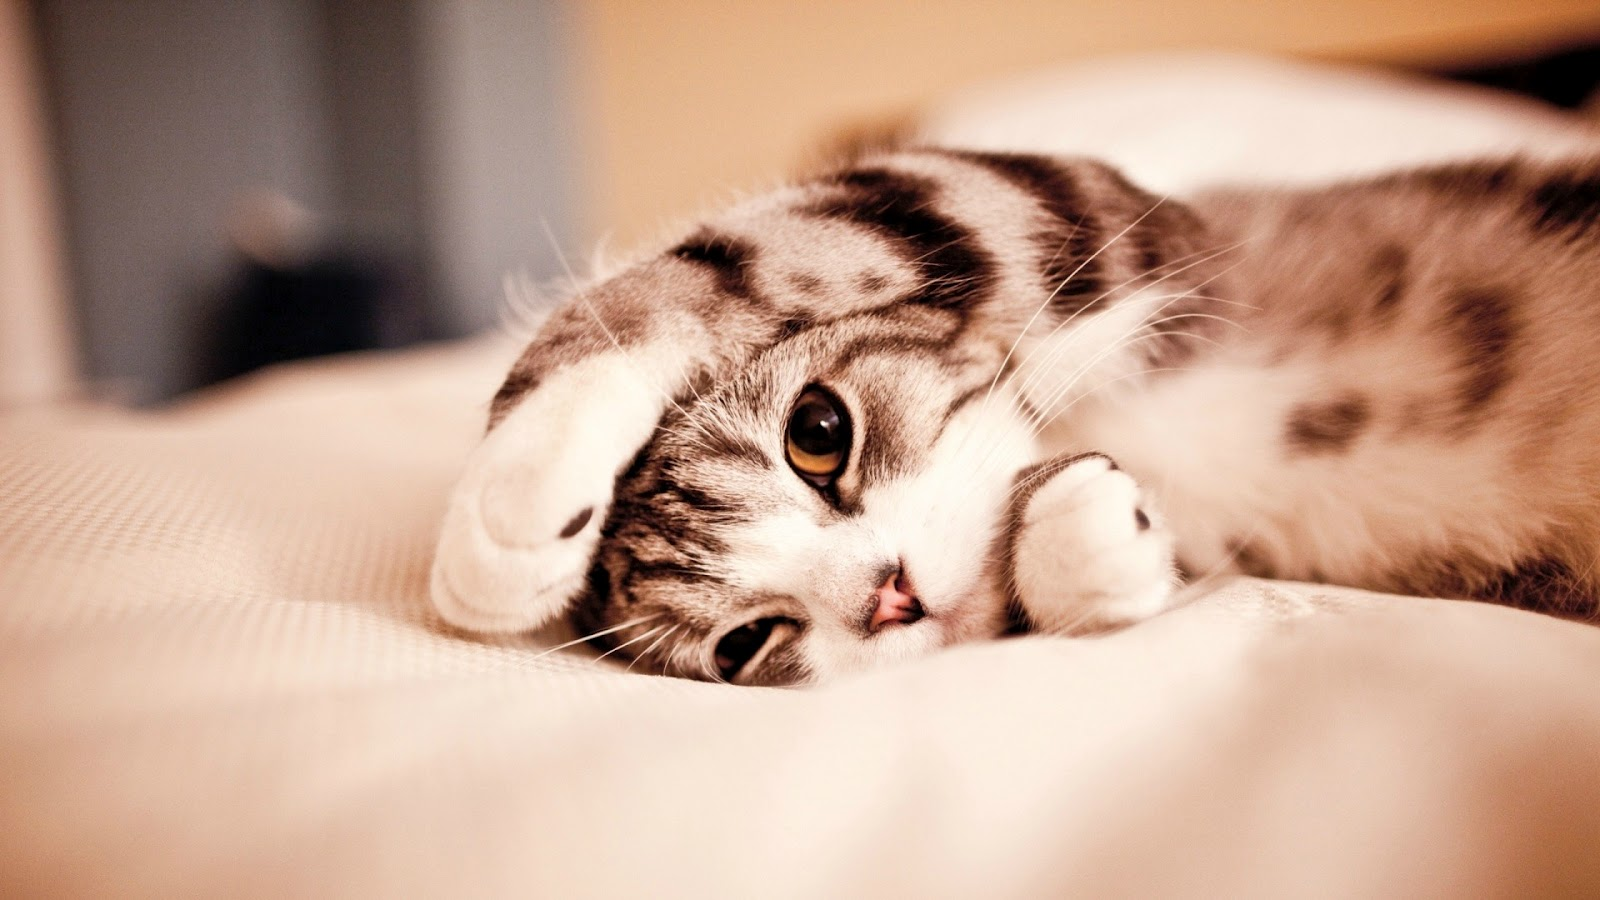 funny and cute cats 10 hd wallpaper - funnypicture